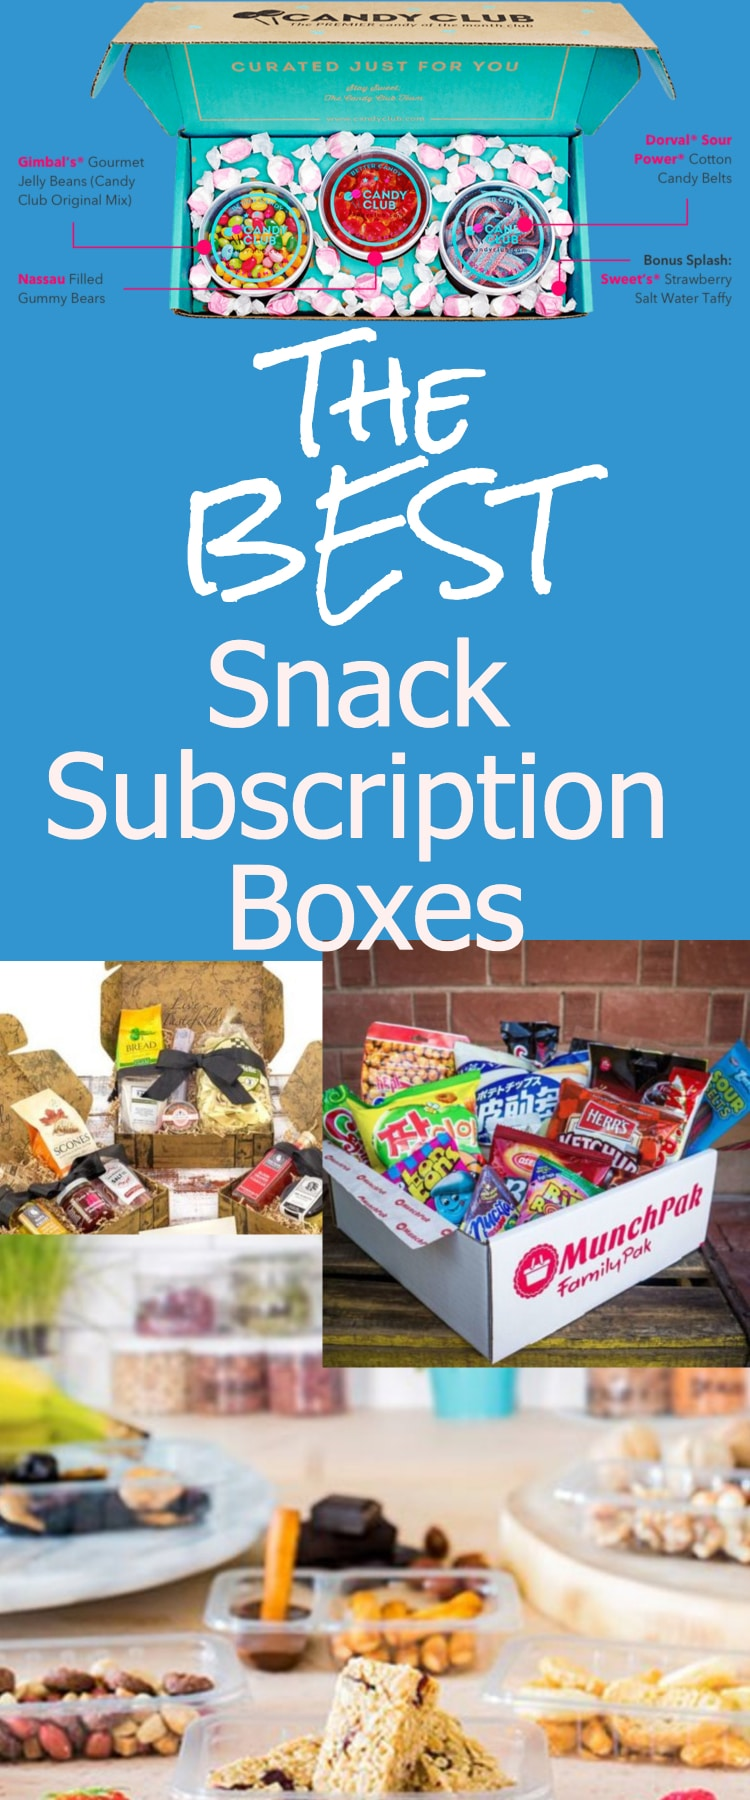 The Best Snack Subscription Boxes